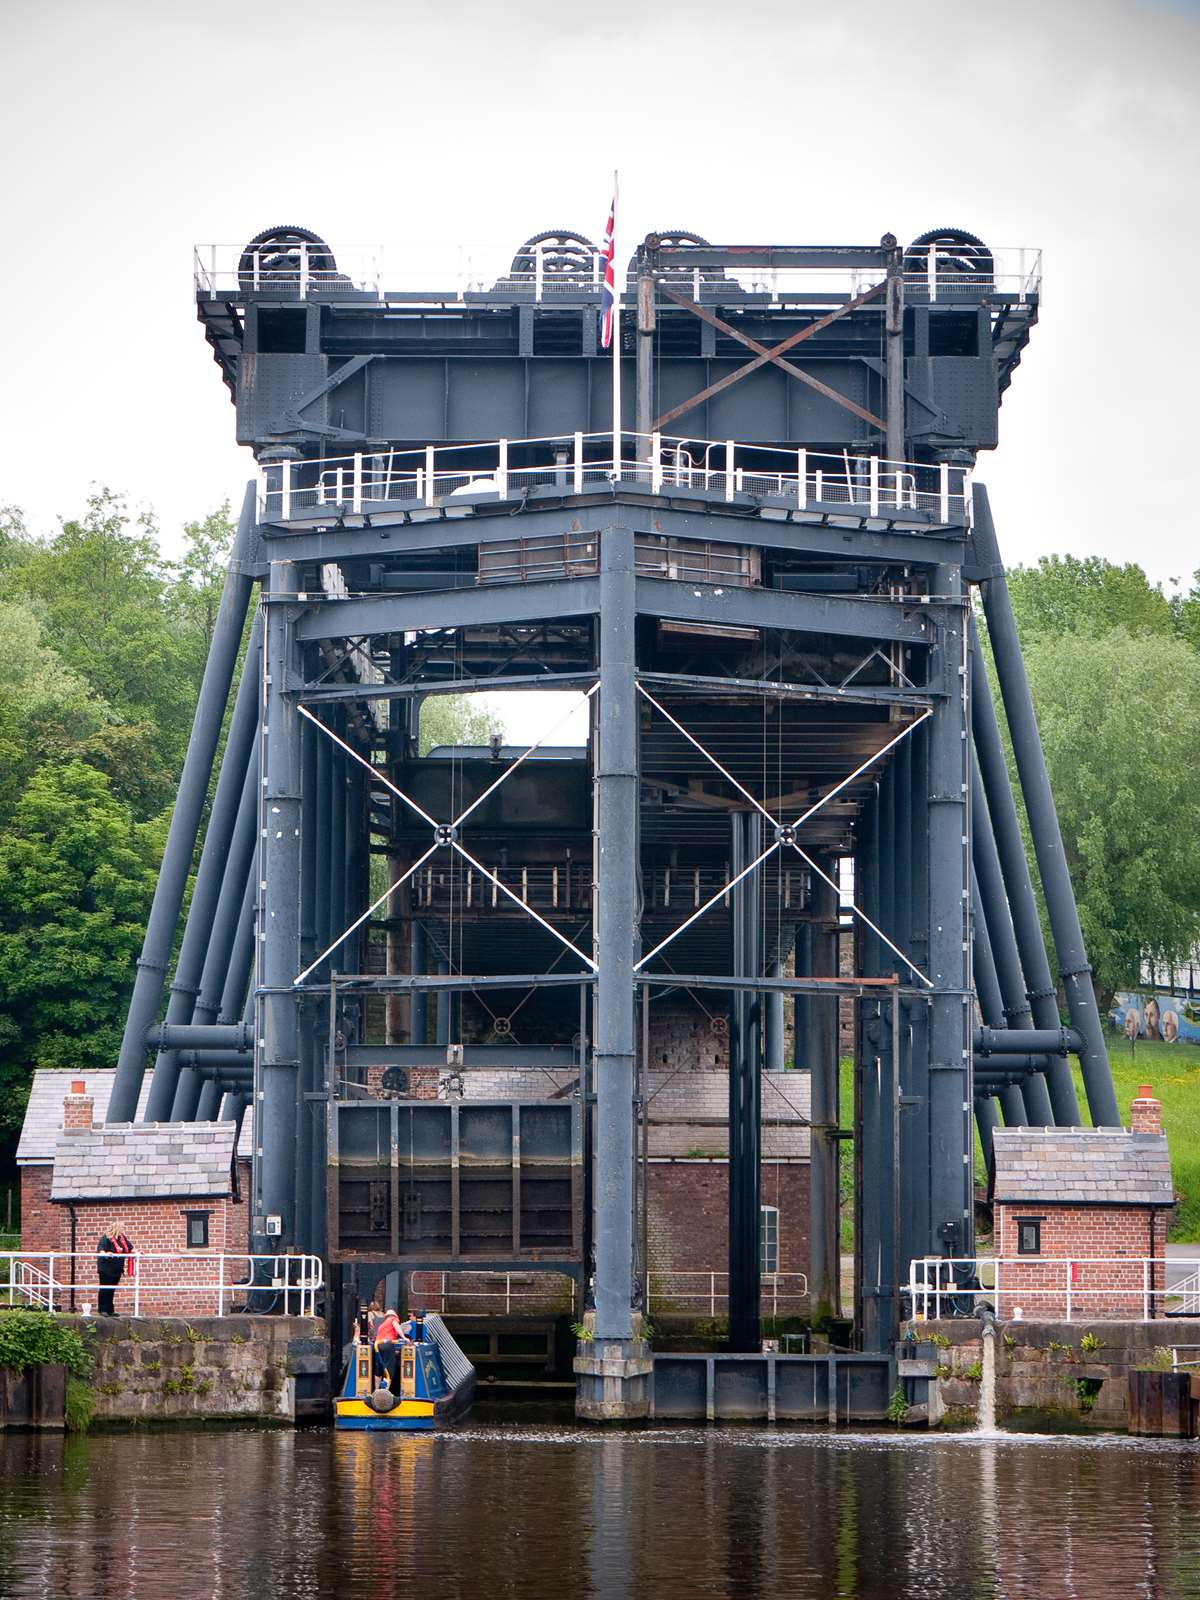 Anderson Boat Lift